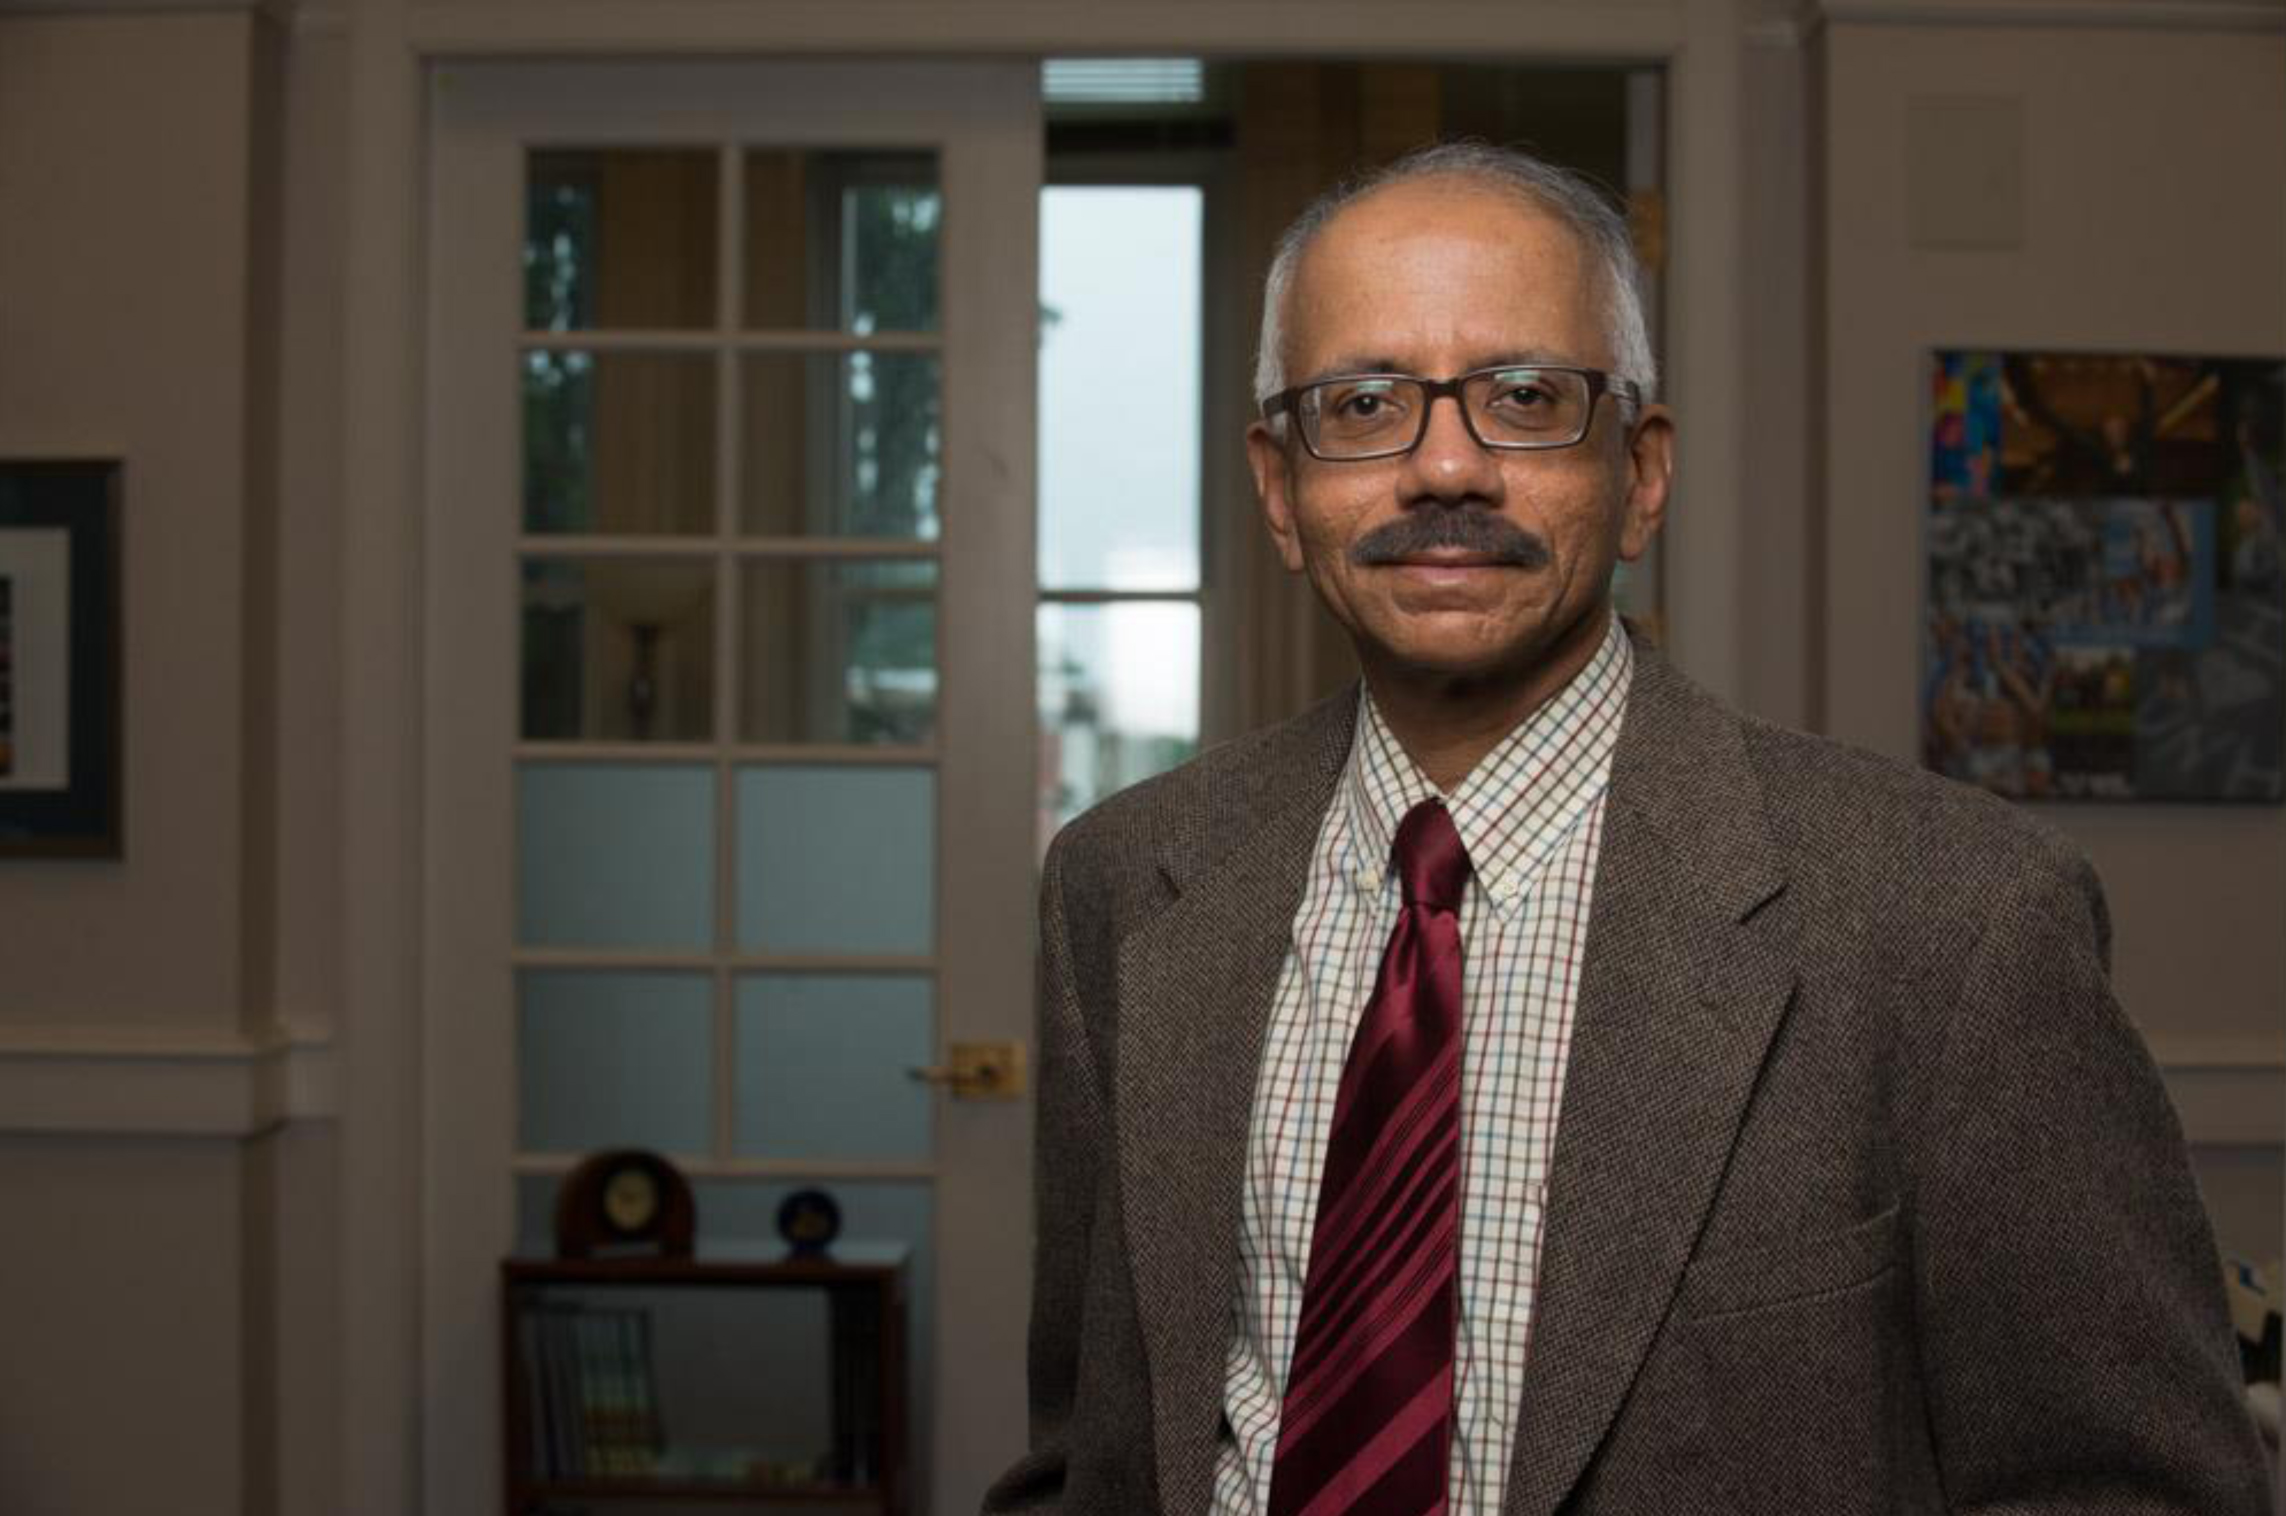 Dr. Vasudevan, Vice President for Academic Affairs at the University of New Hampshire